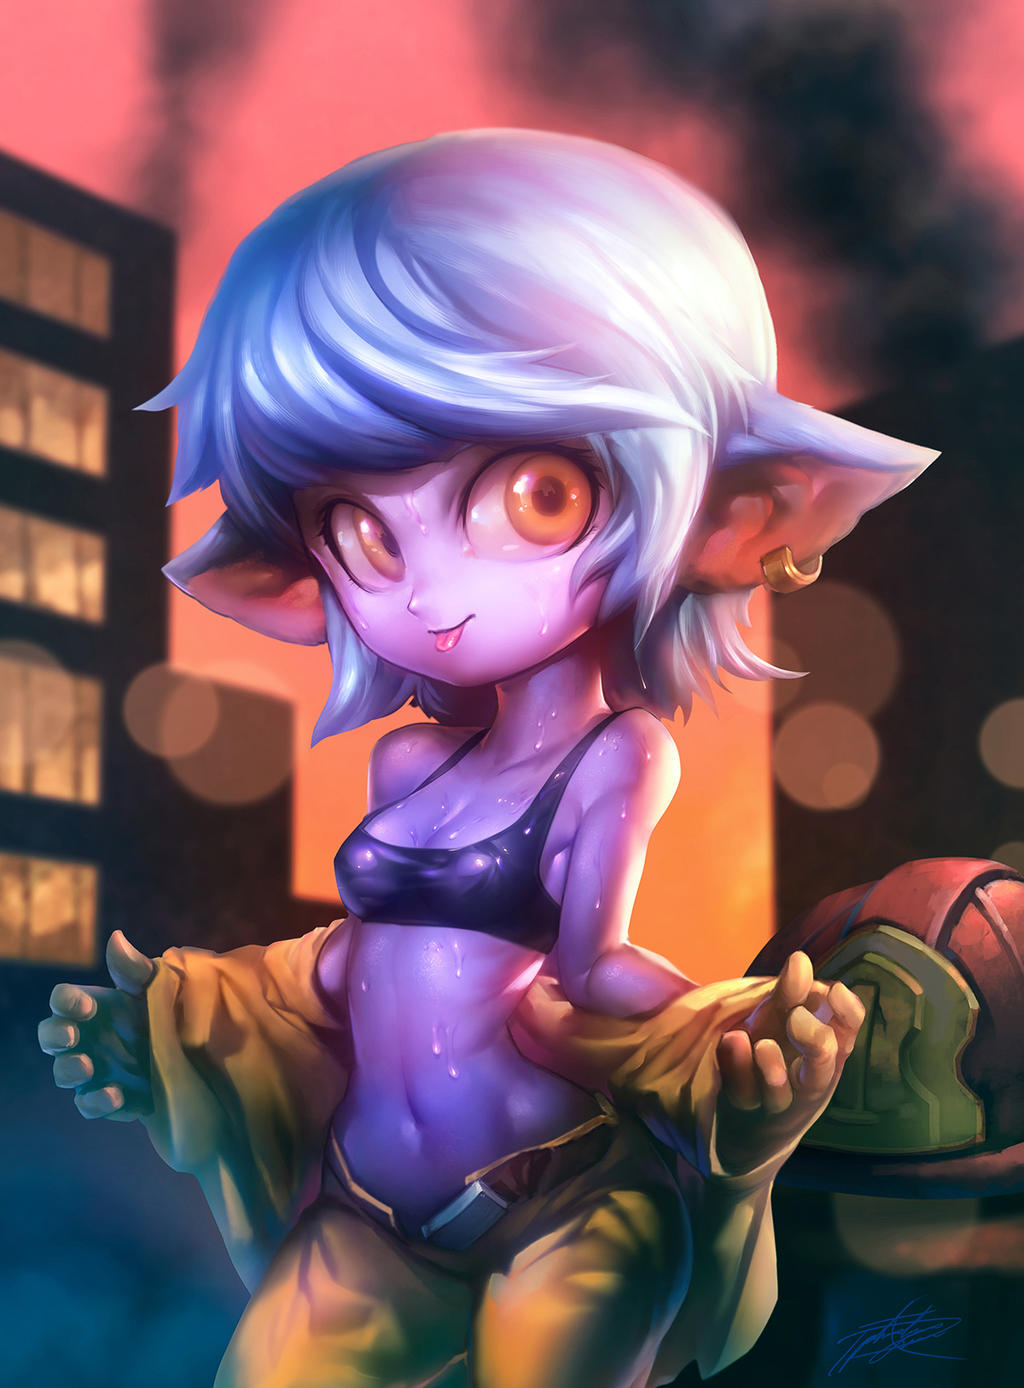 Firefighter Tristana by ptcrow on DeviantArt